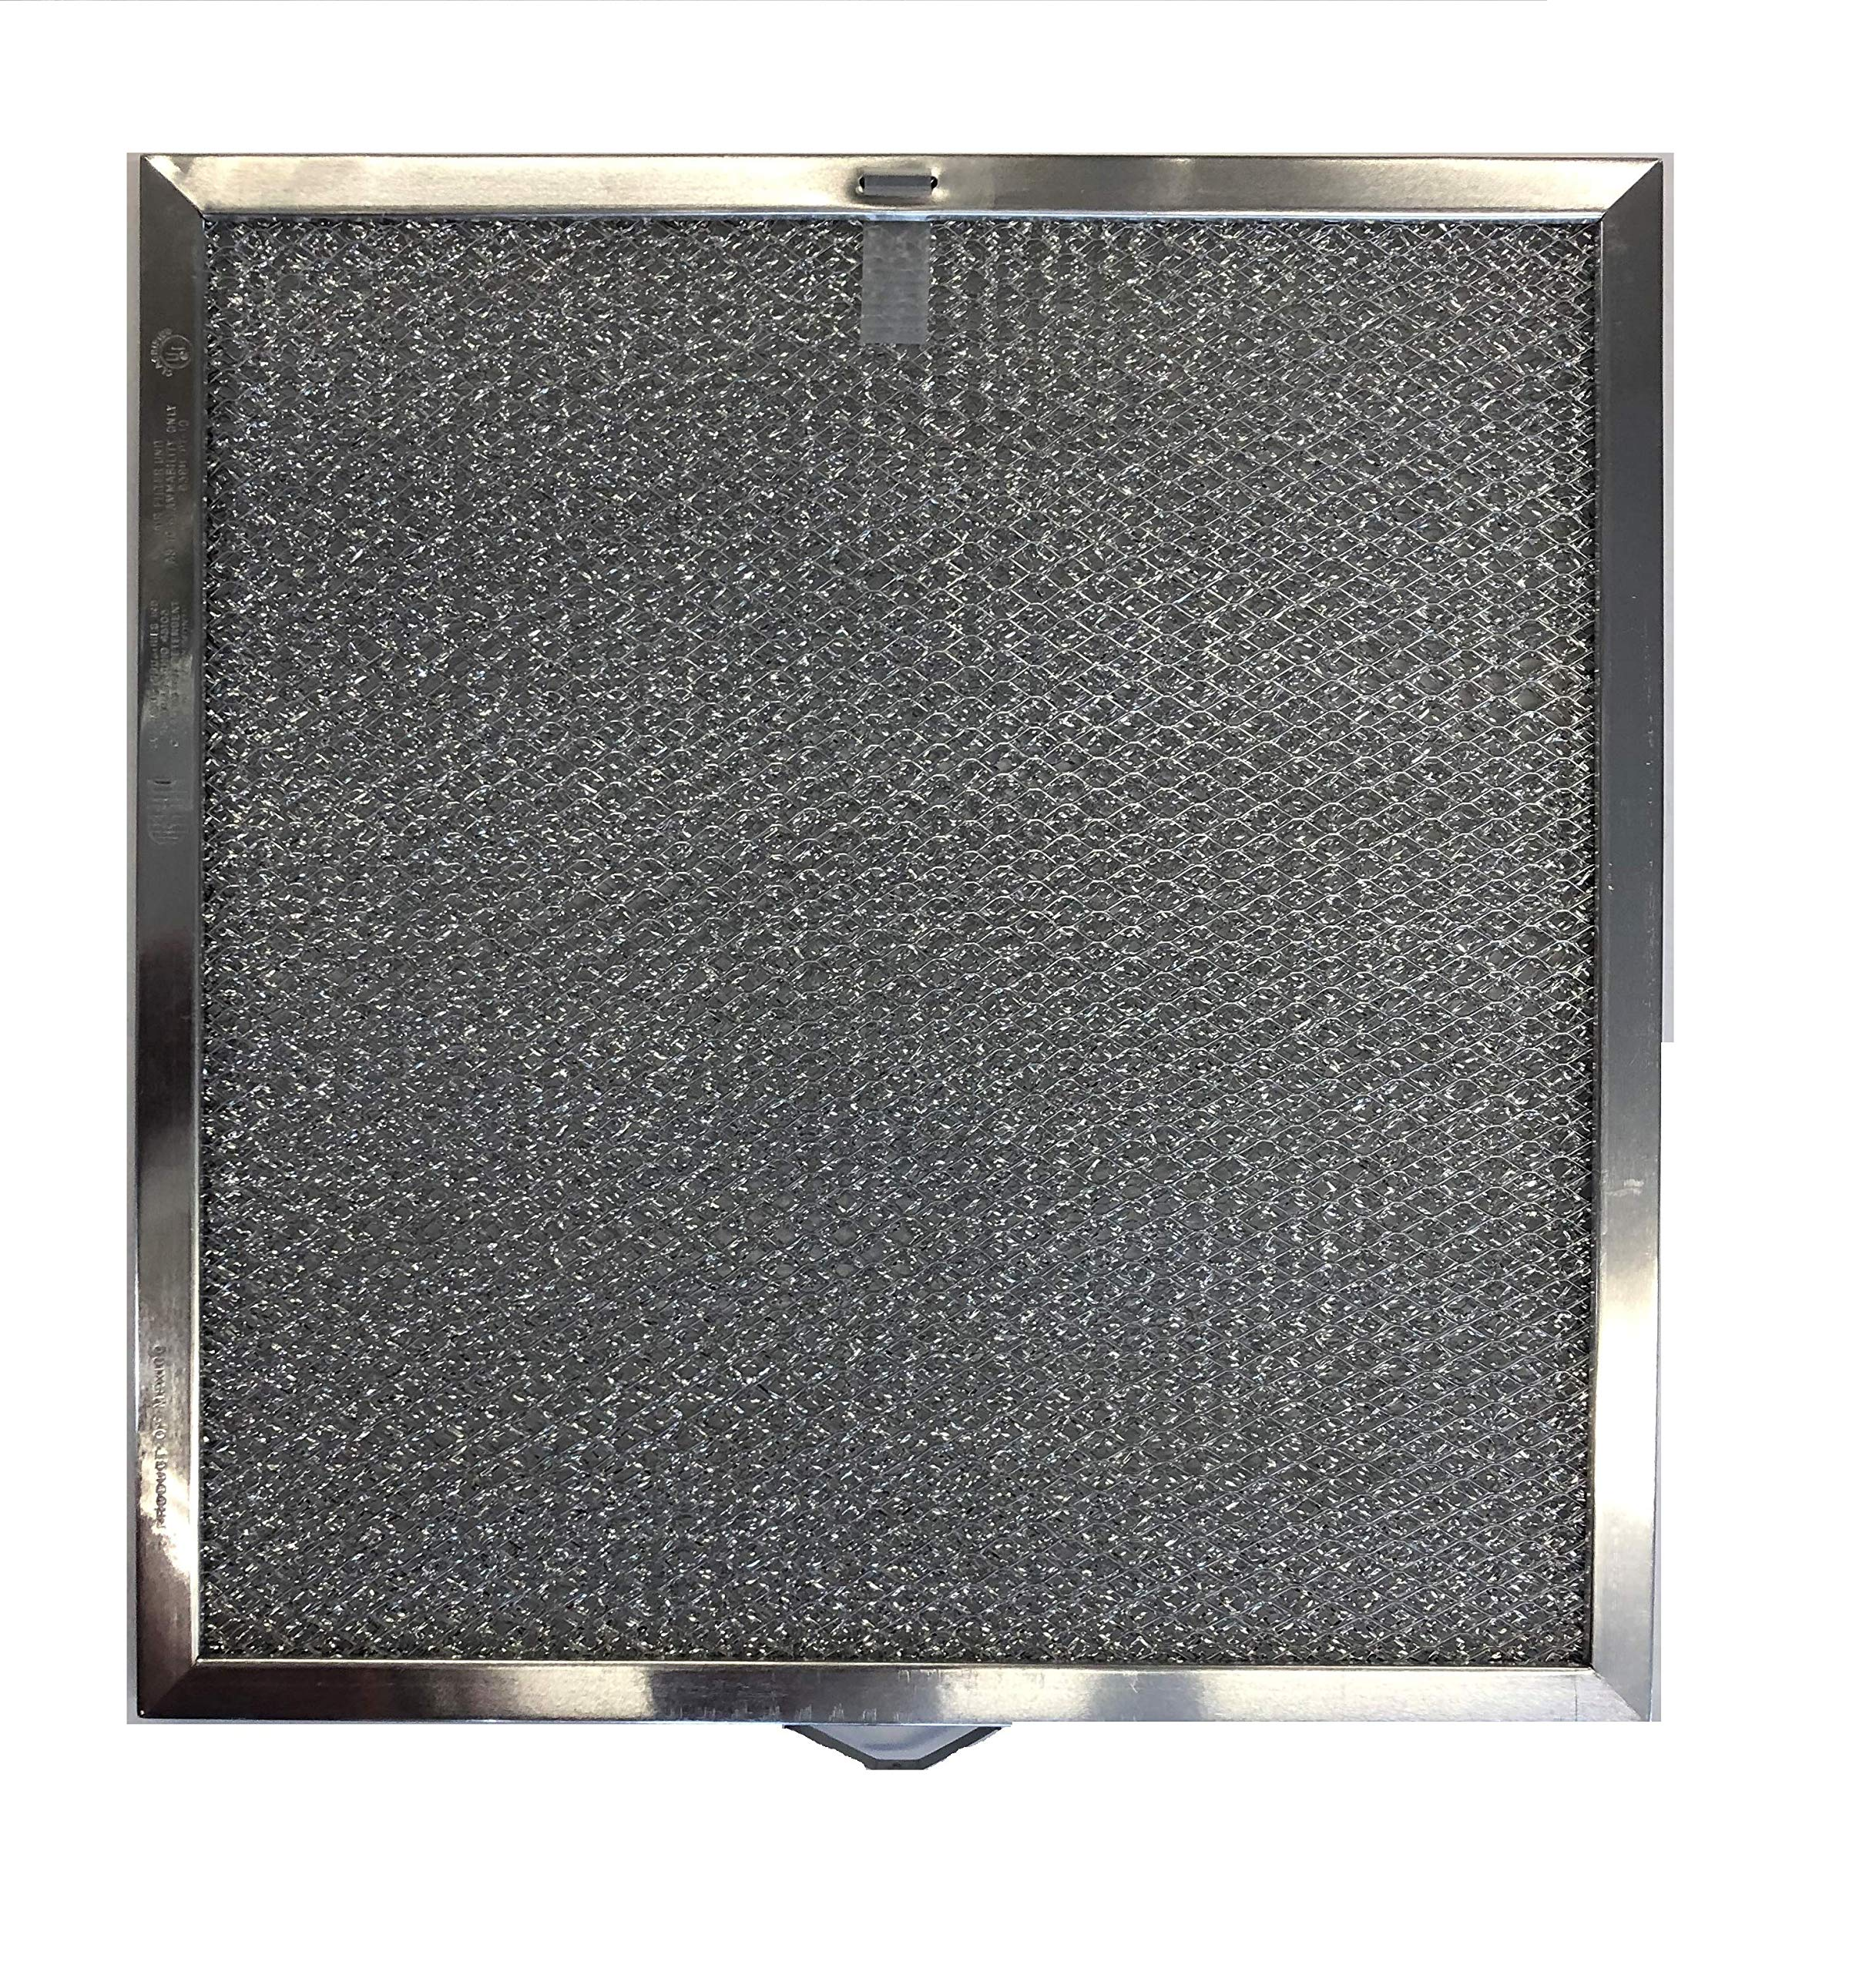 Replacement Range Hood Filter Compatible with Broan / Nutone Model S99010316   11 1/4 x 11 3/4 x 3/8